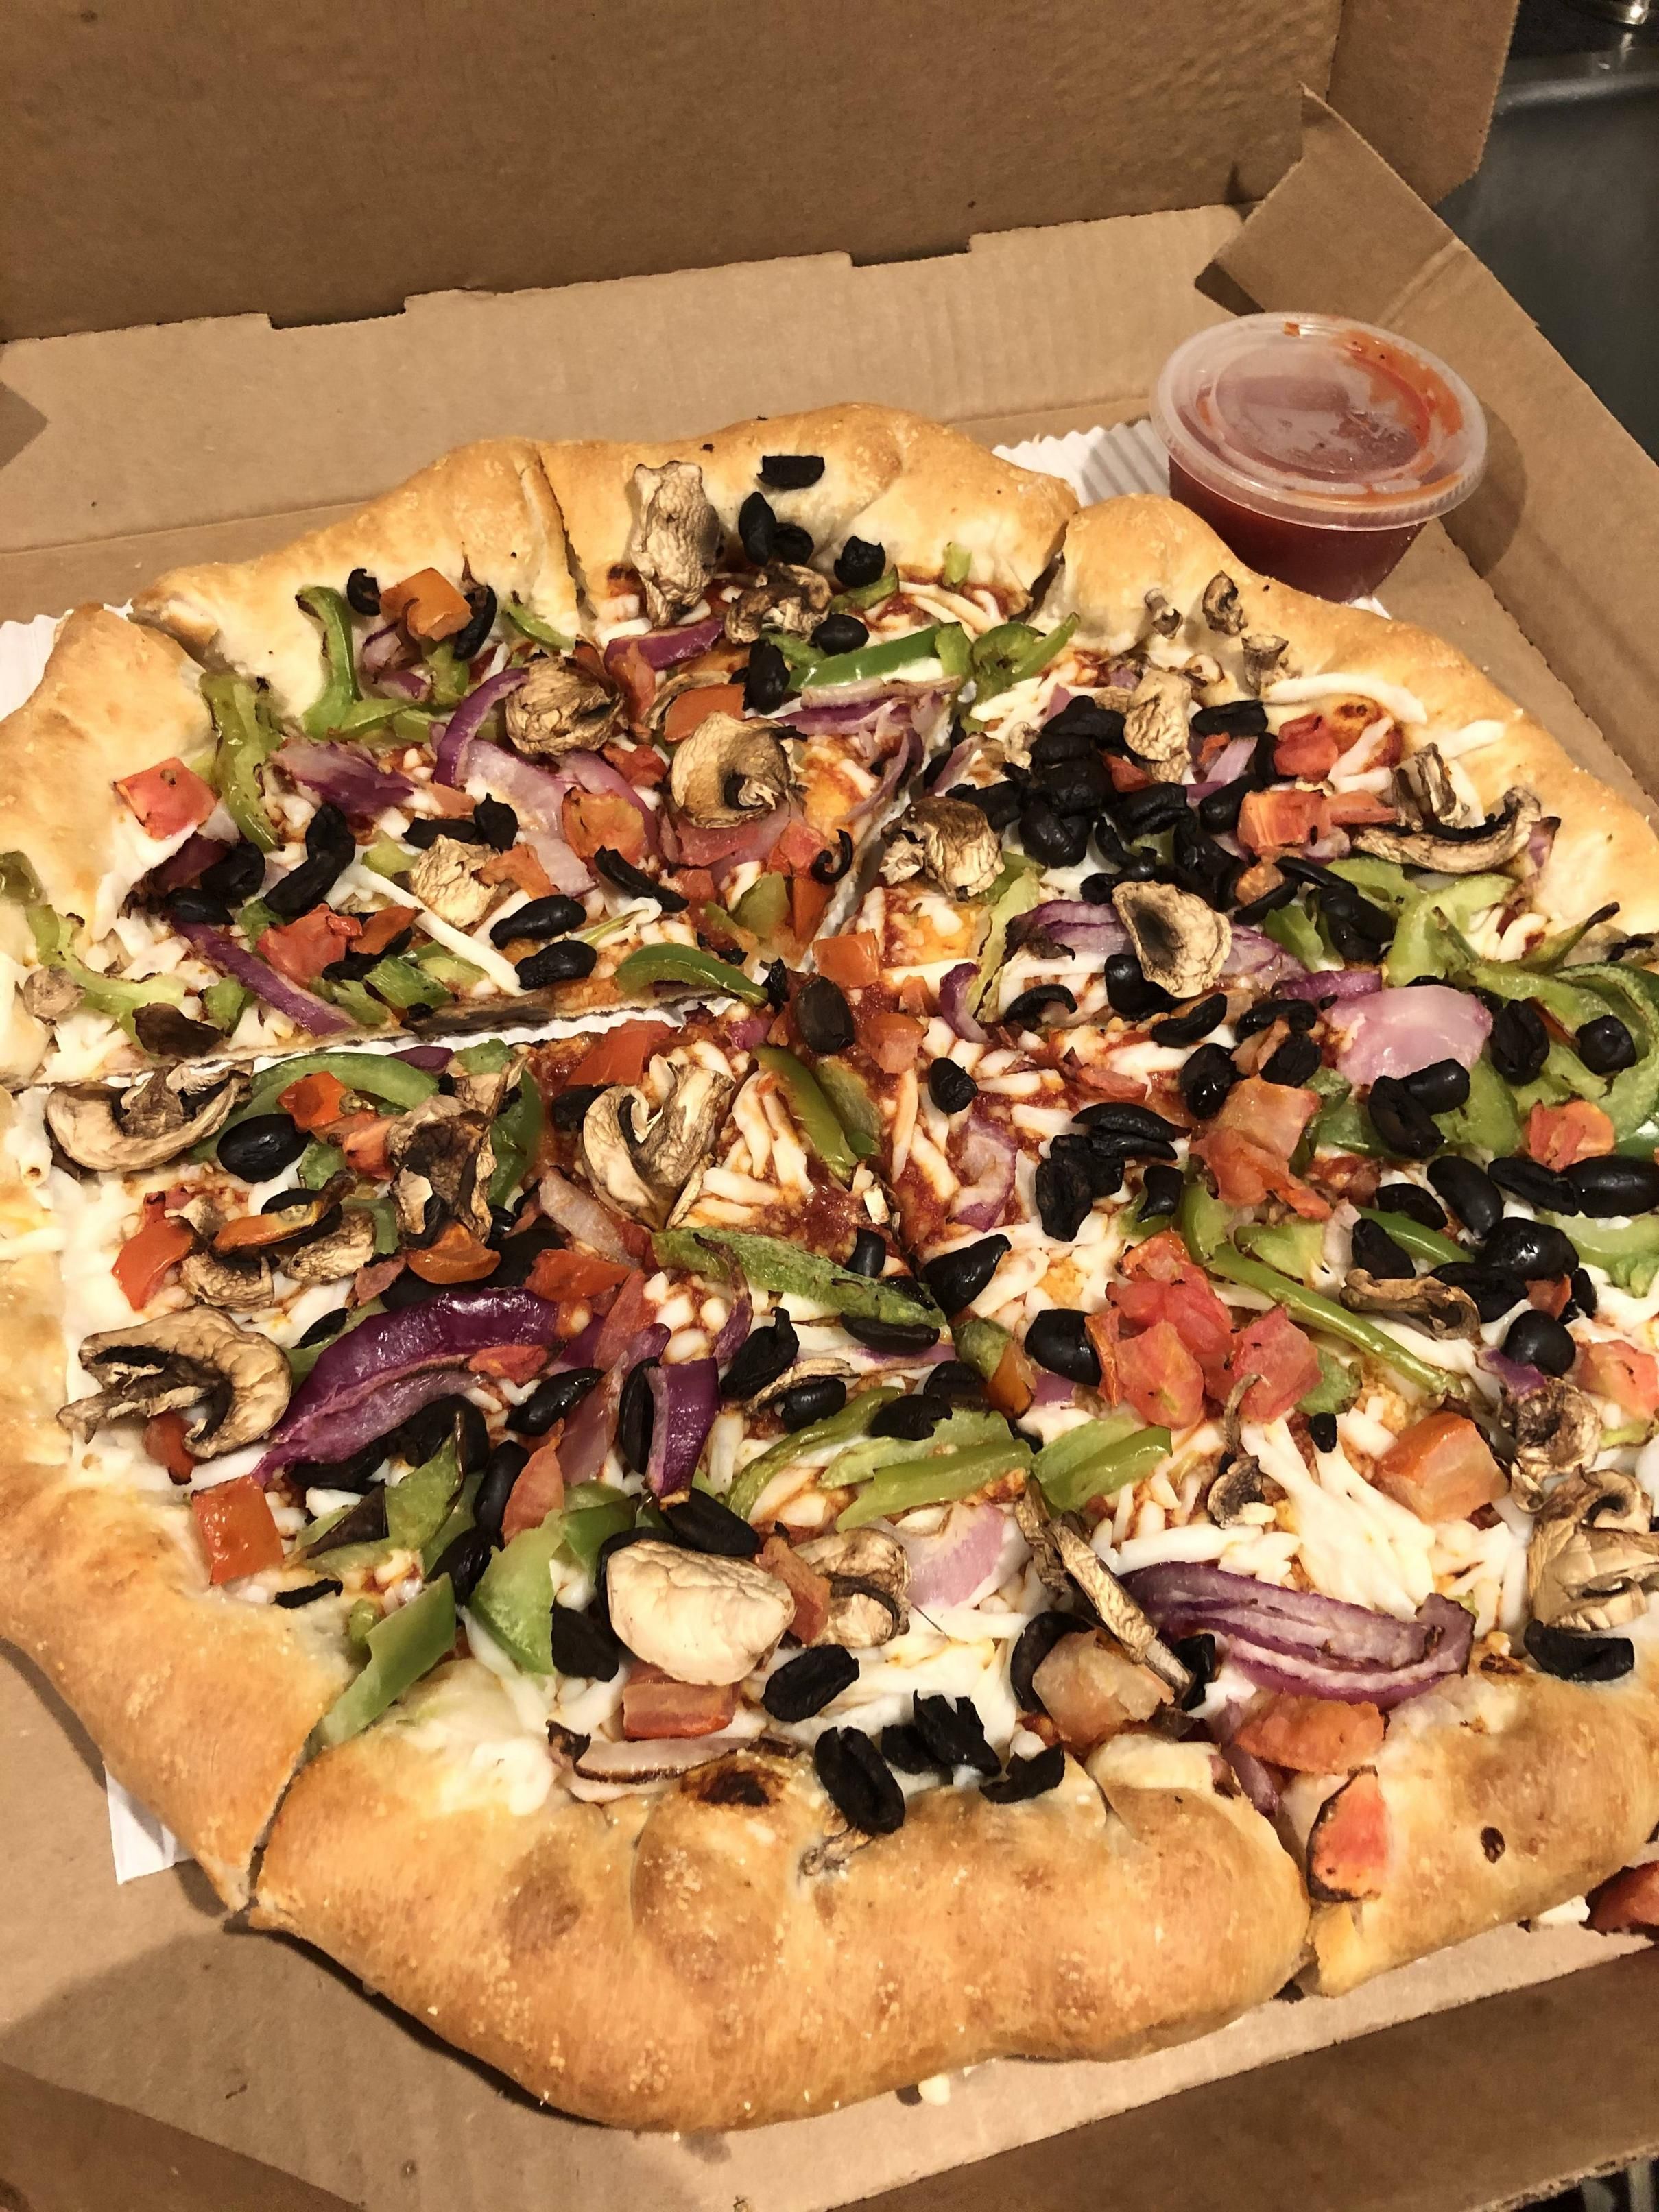 Ordered A Pizza With No Cheese From Pizza Hut Brought Some Vegan Mozzarella To Sprinkle On So It Would Melt On The Way Home Vegan Mozzarella Pizza Hut Pizza